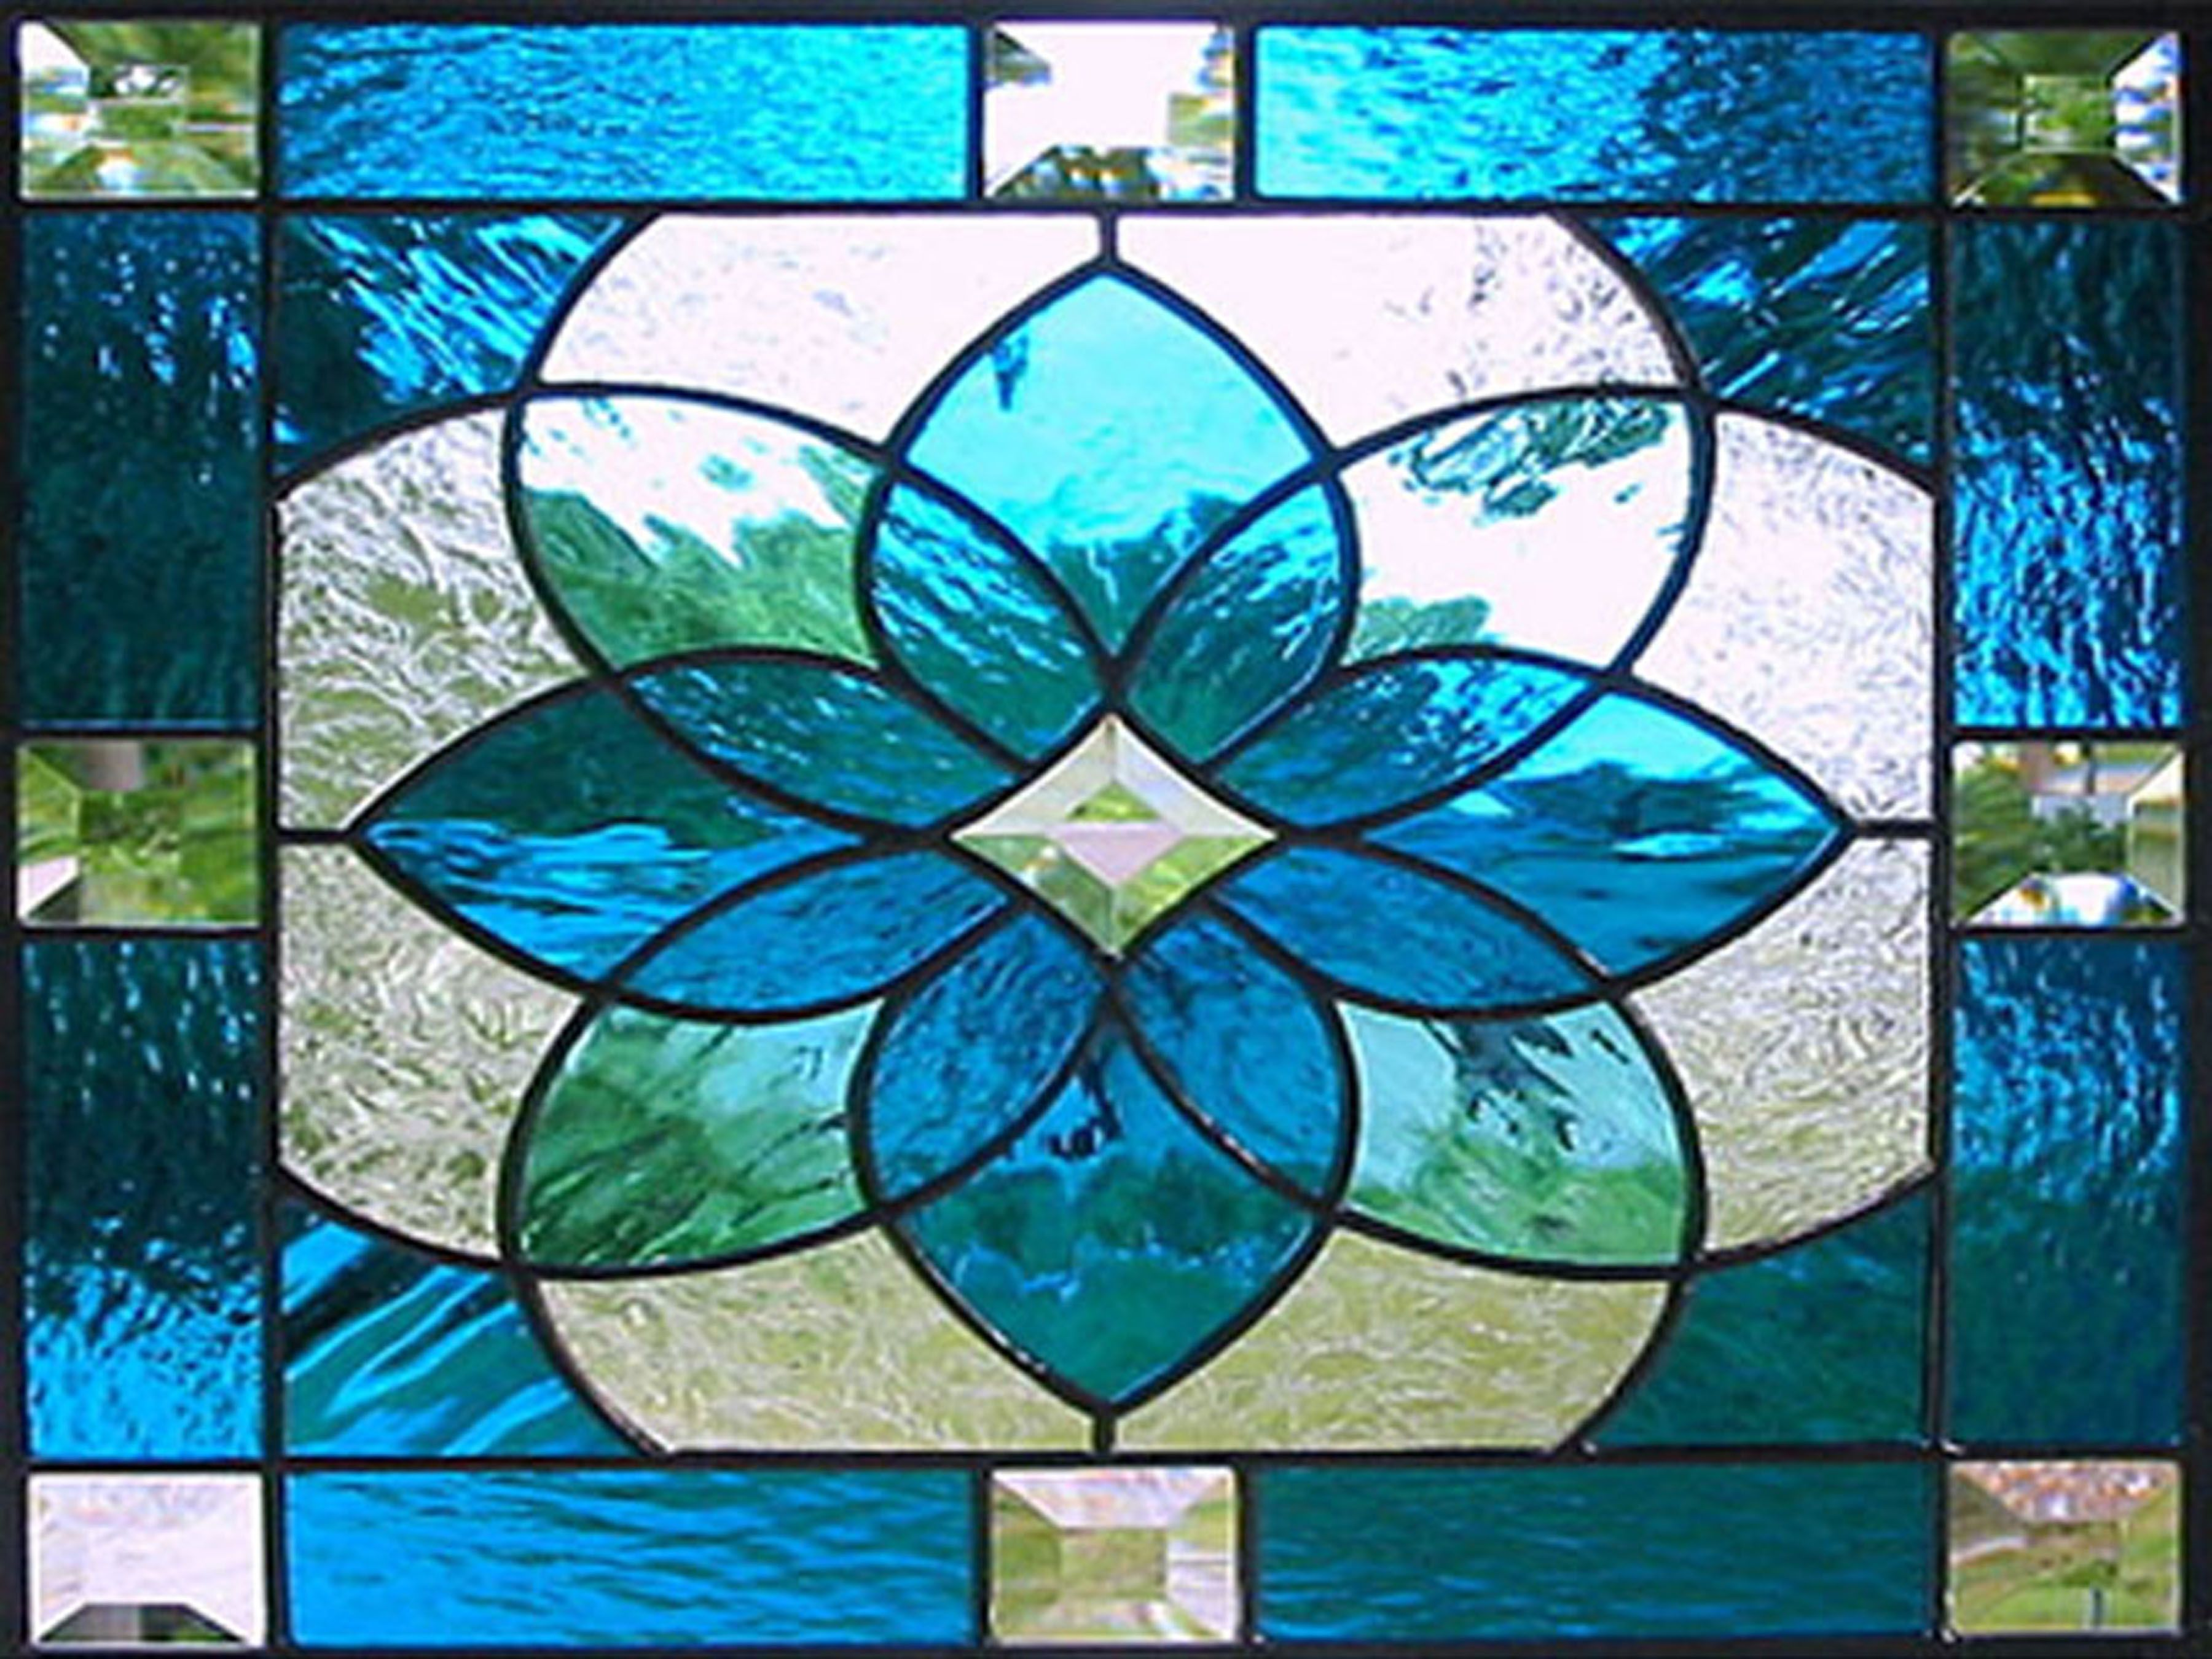 Stained glass designs art deco stained glass ideas for Art deco glass windows